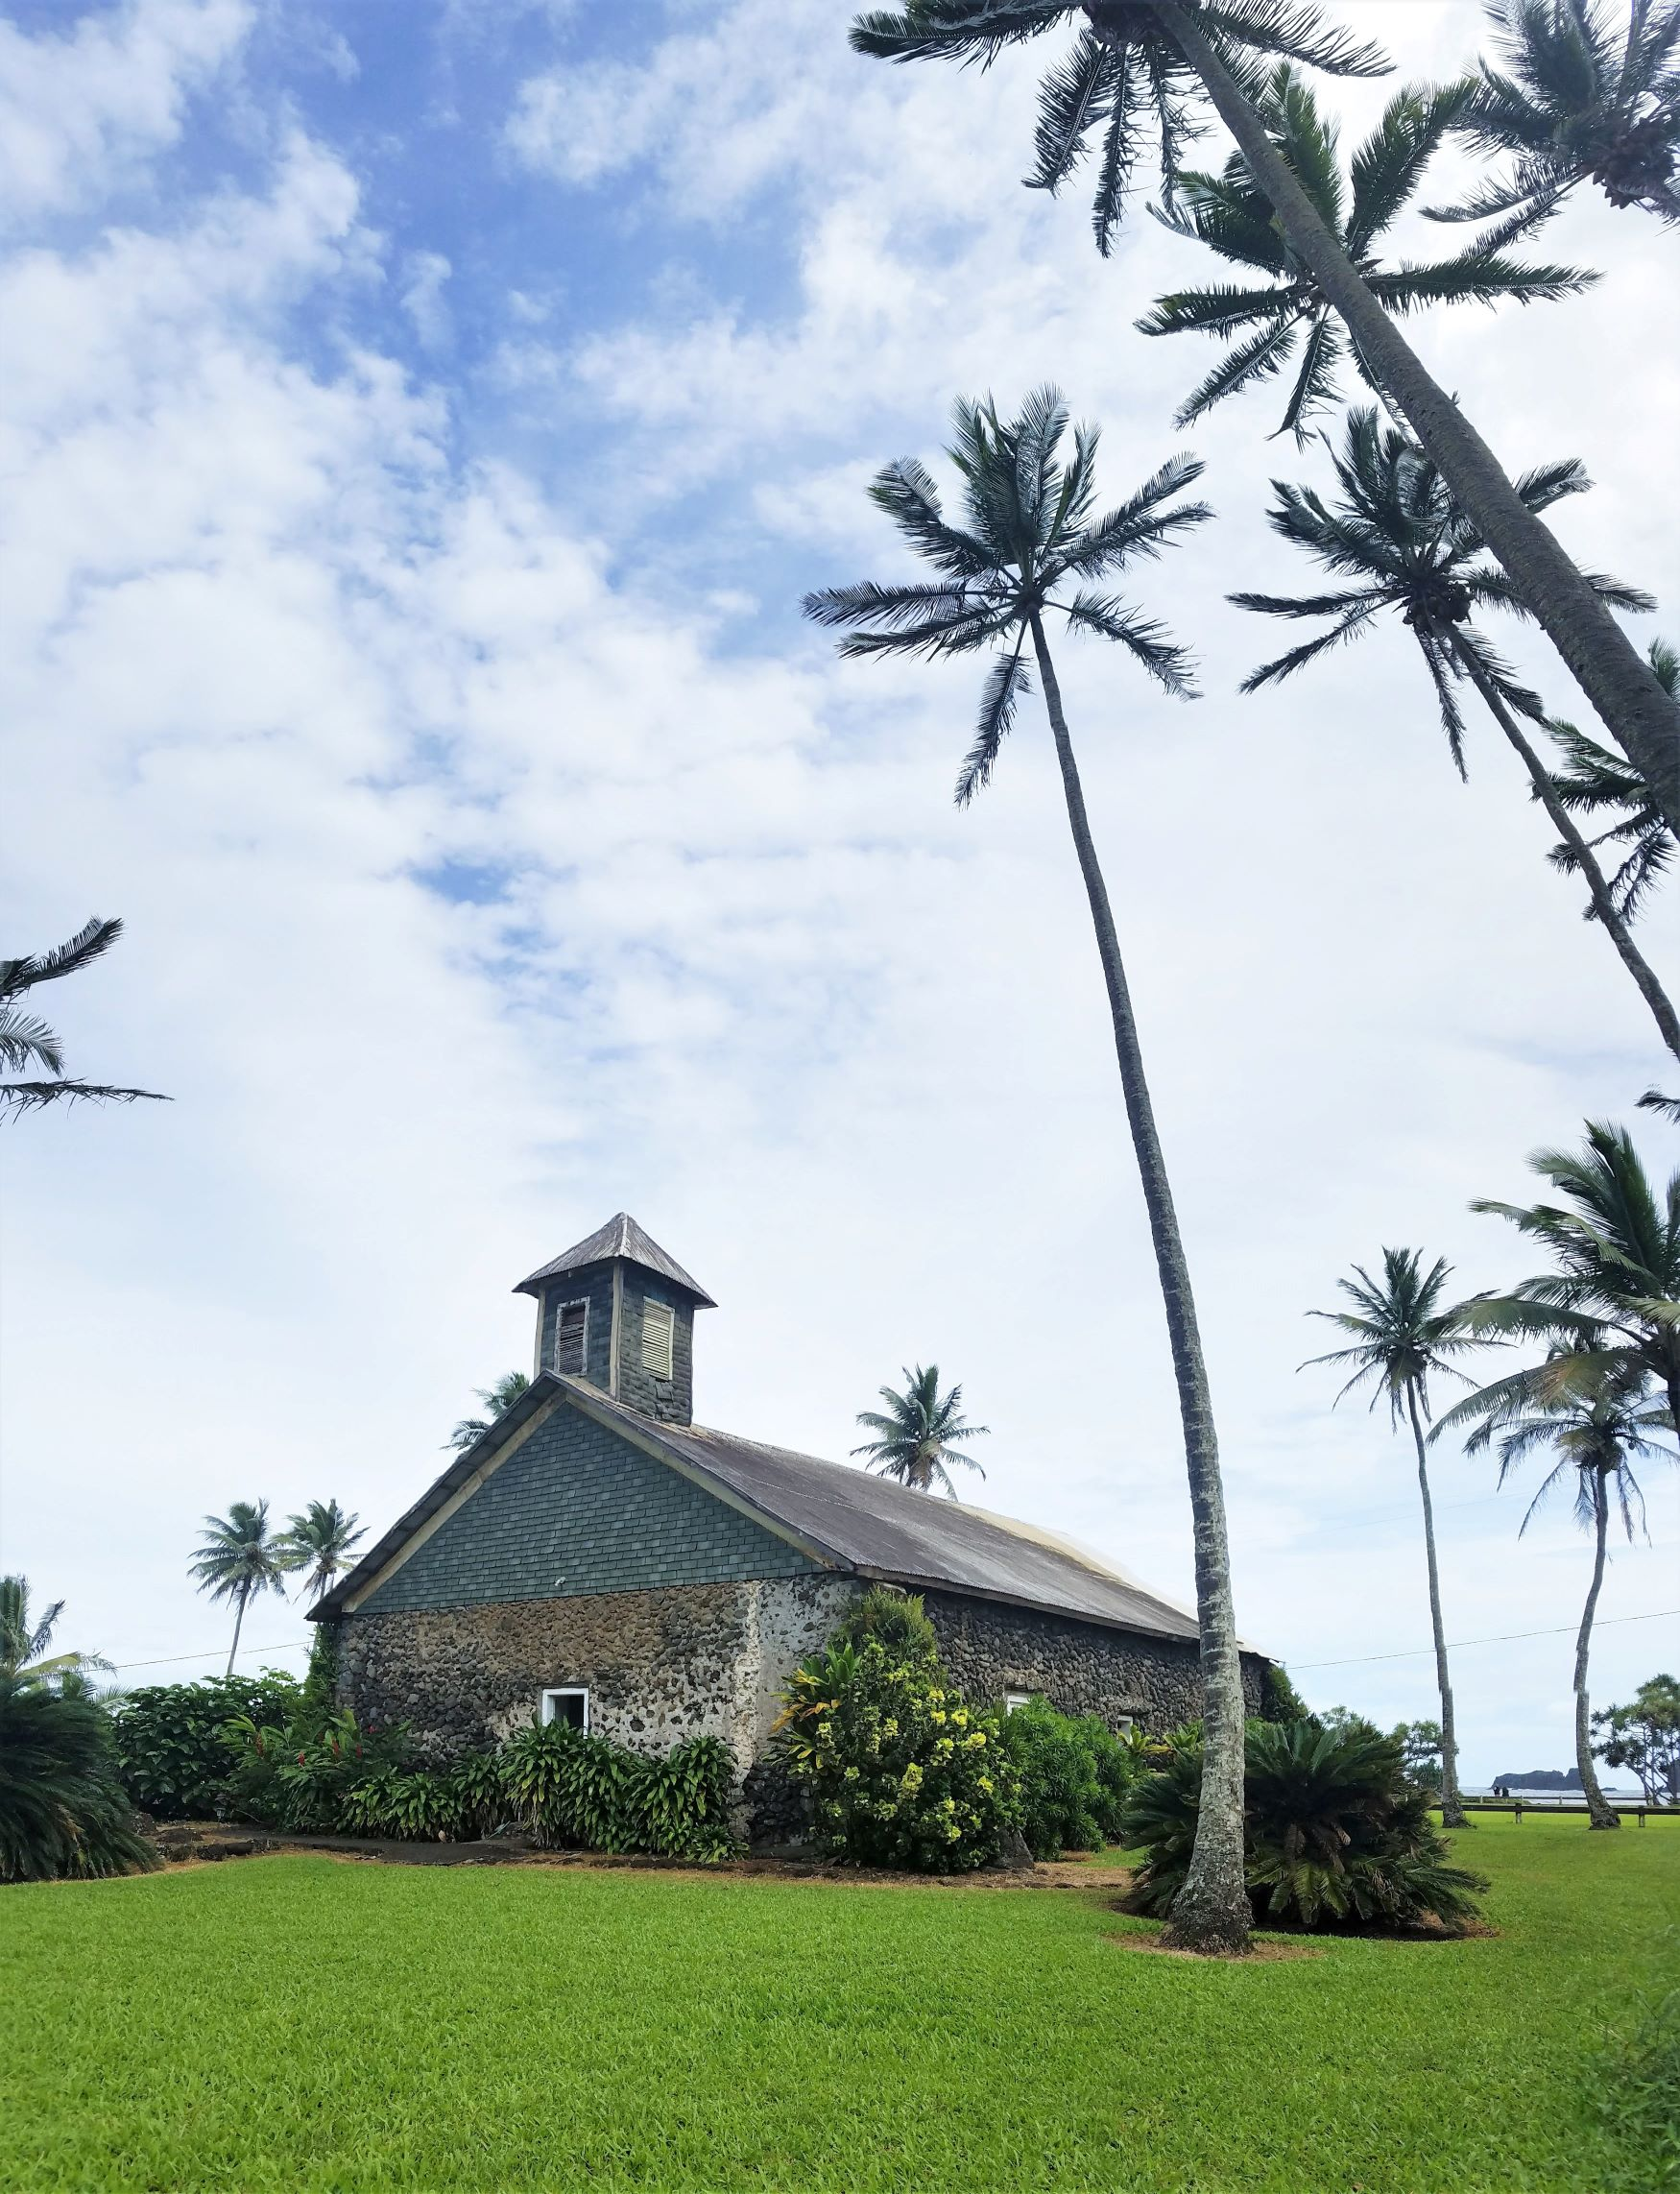 This stone church building surrounded by green lawns and soaring palms is along the Road to Hana, where Maui places to stay are scattered and remote.